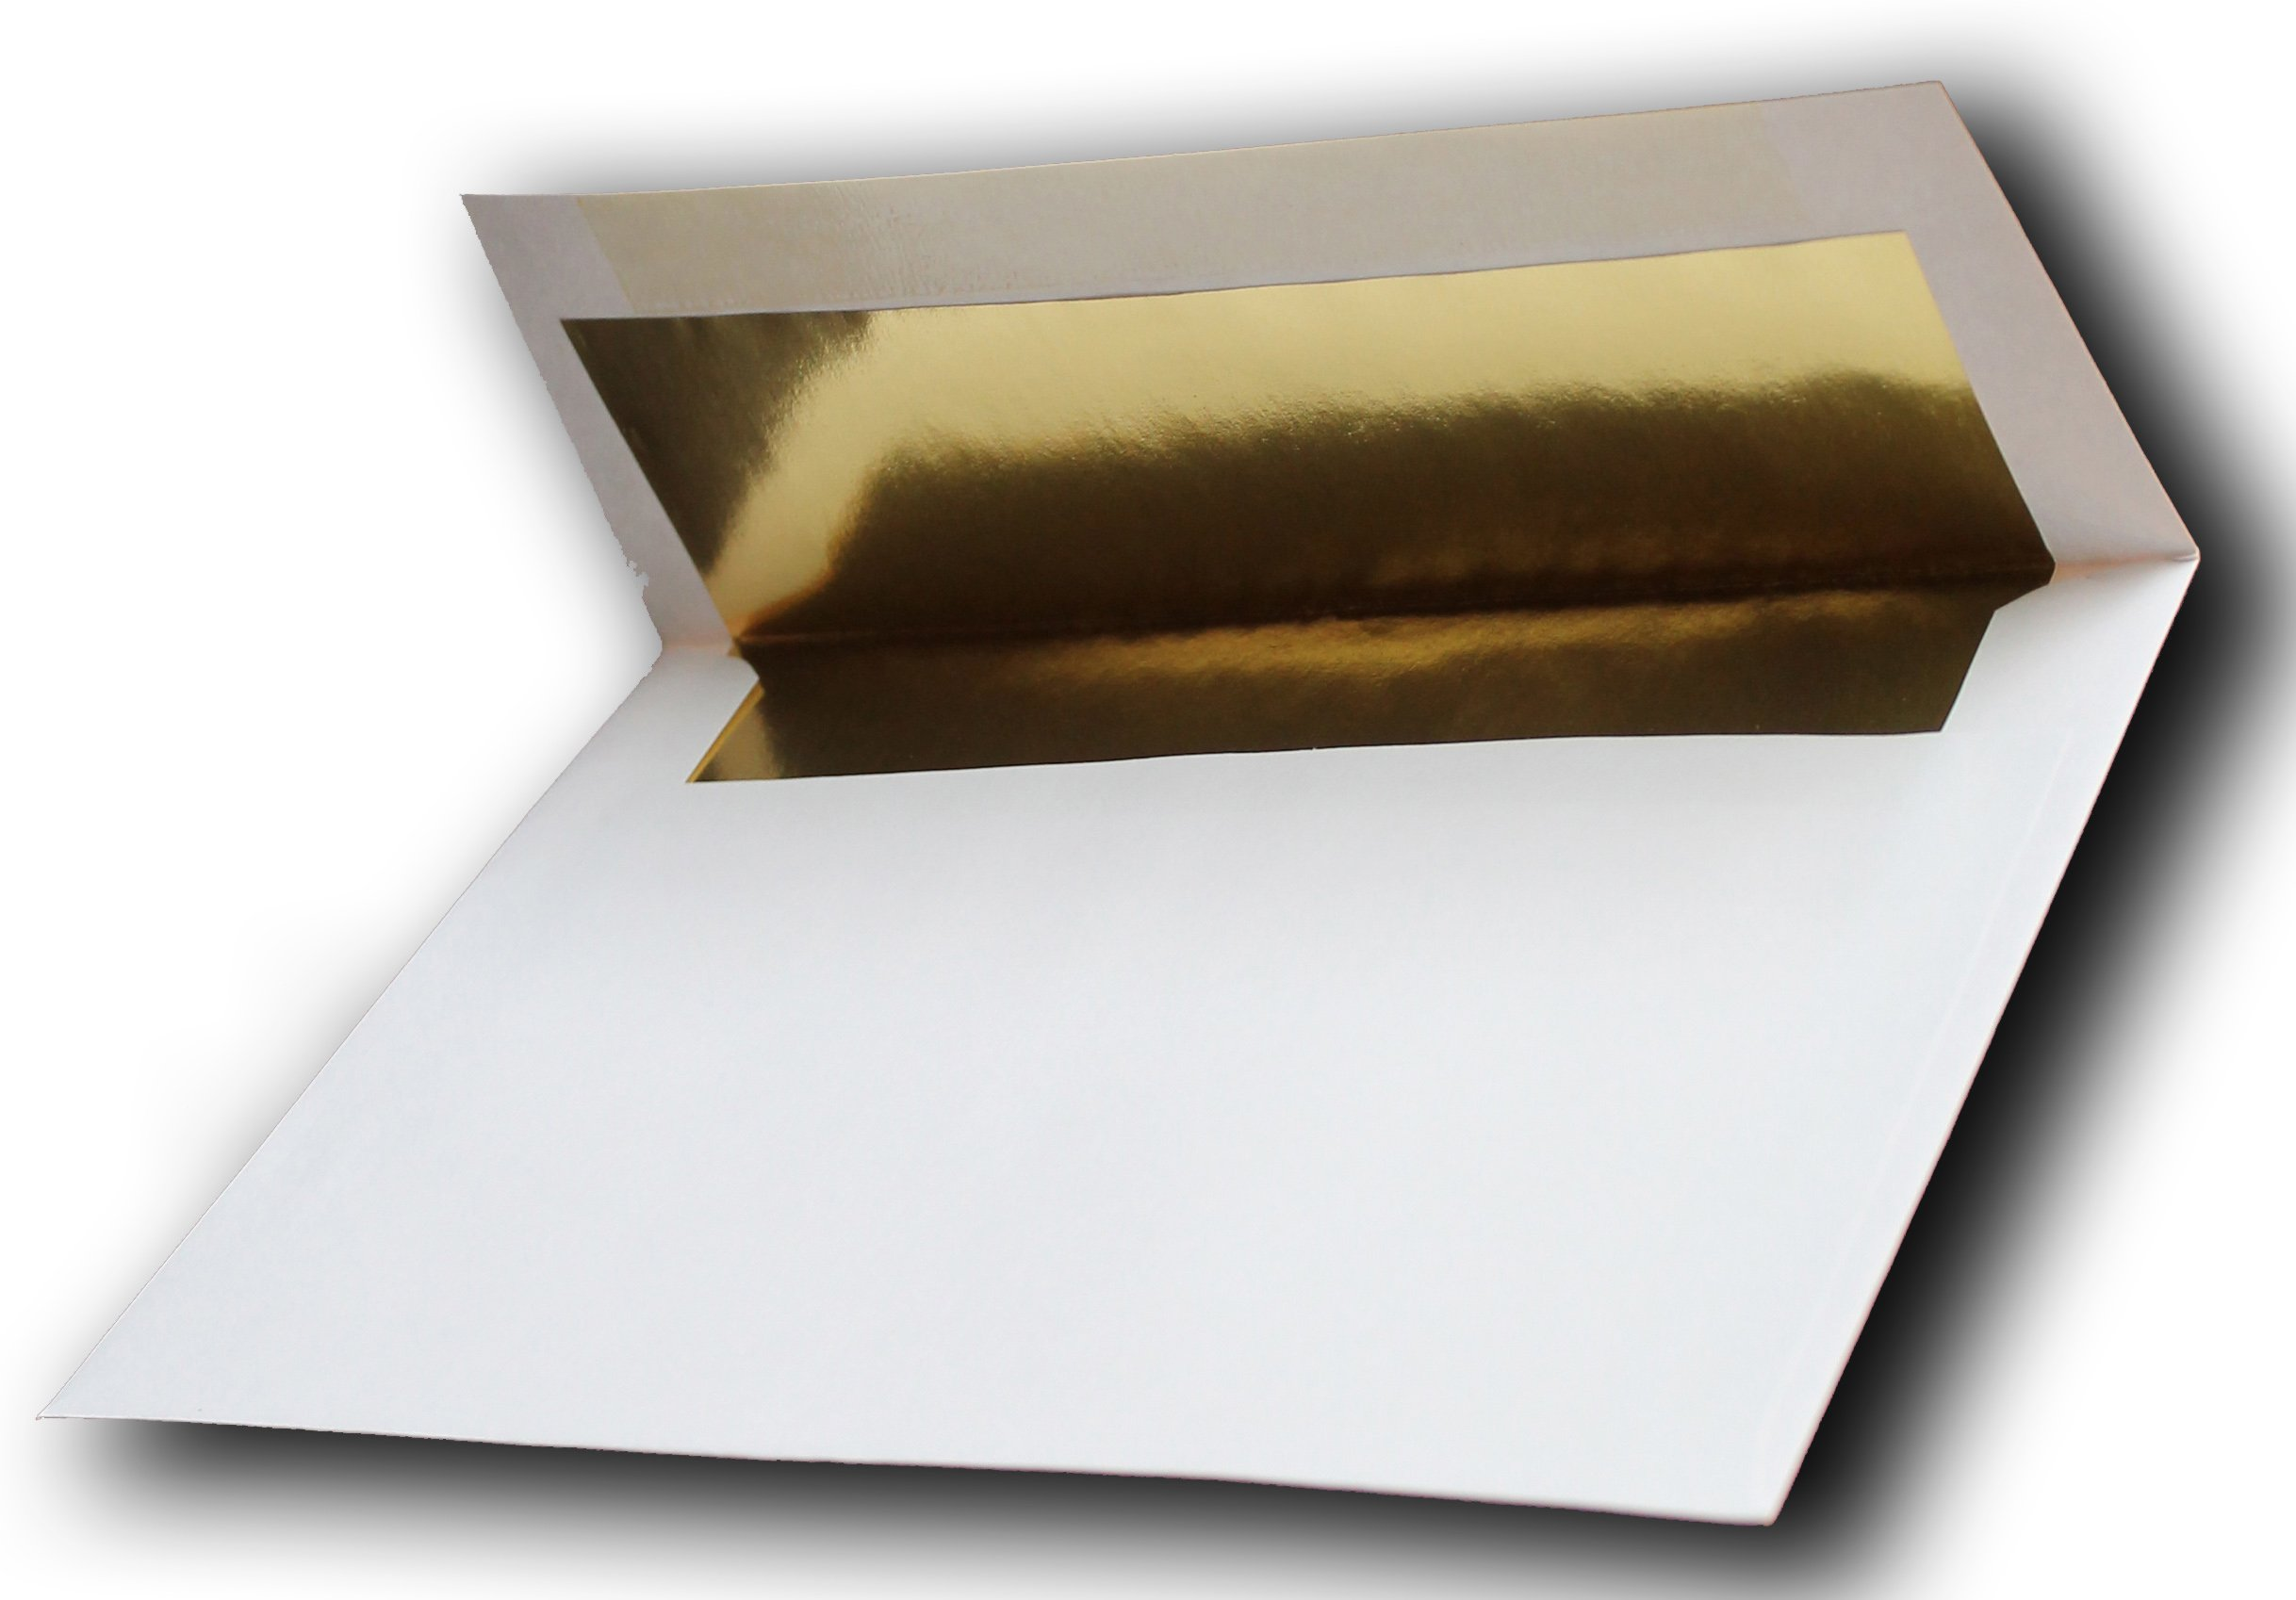 Free Shipping 1000 Gold Foil-lined A7 5-1/4'' X 7-1/4'' Envelopes for 5'' X 7'' Greeting Cards, Invitations Announcements Showers Communion Wedding Christening Birth Confirmation the Envelope Gallery